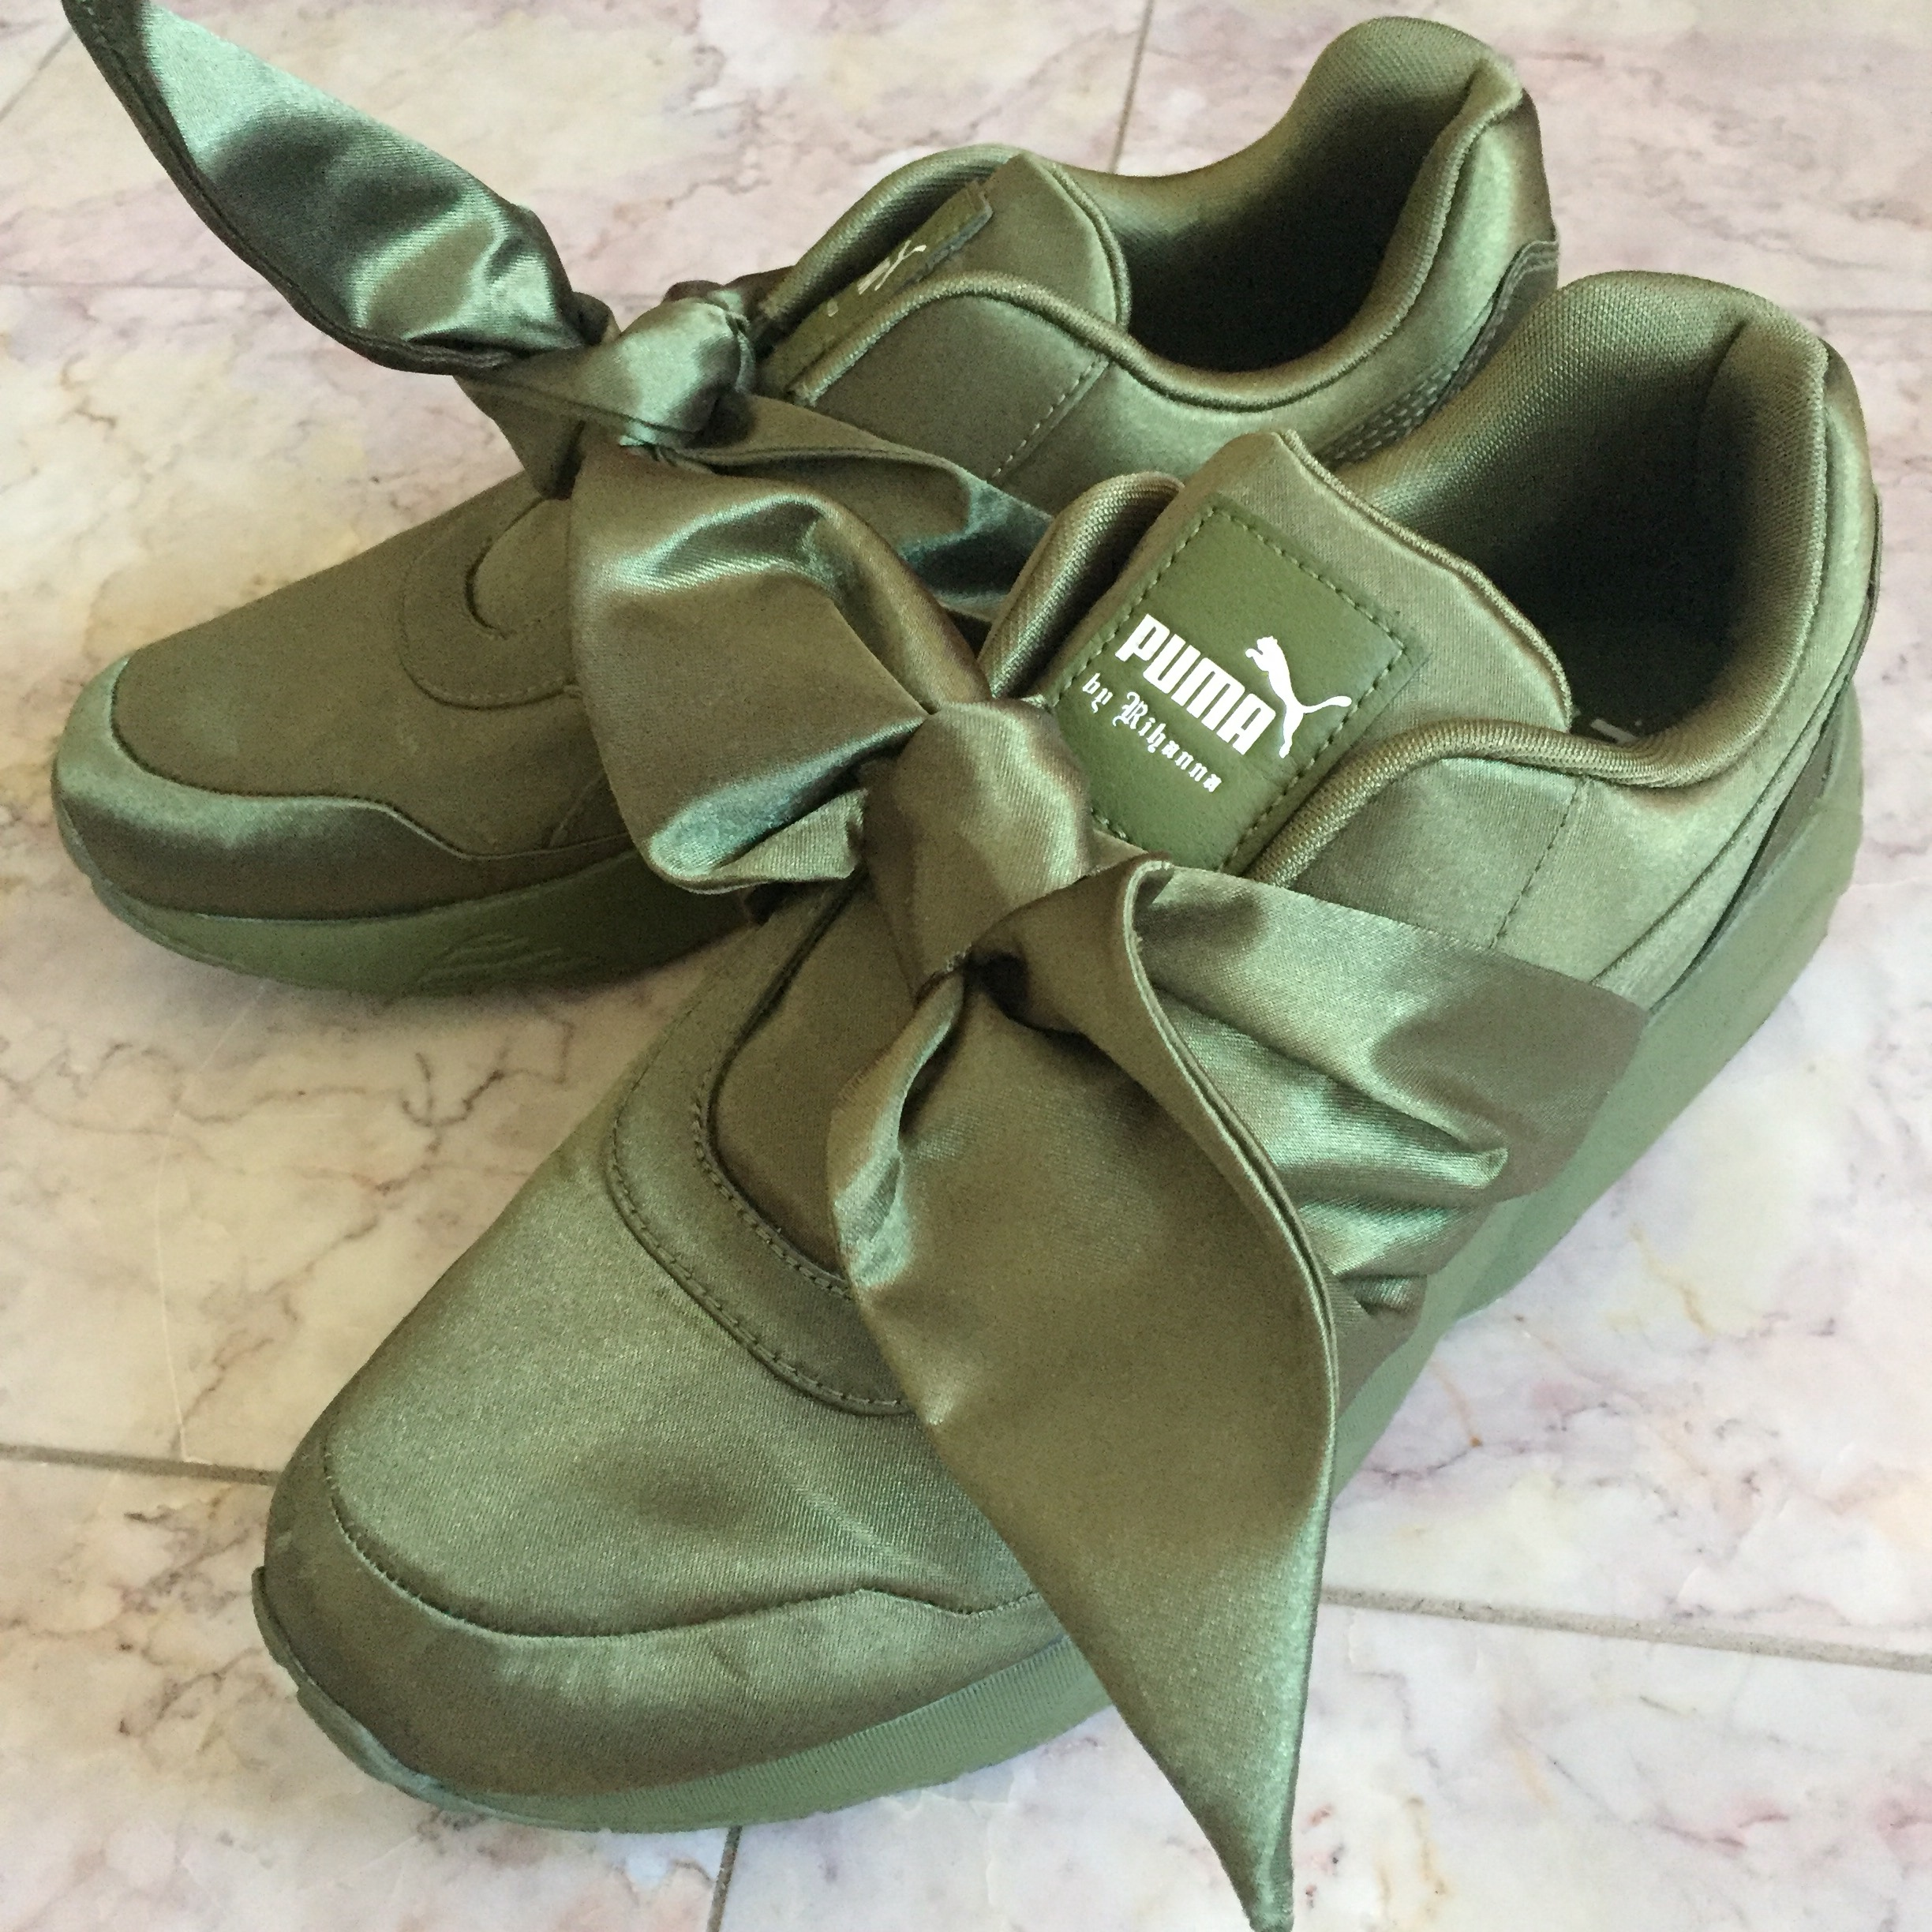 new product a268f 7feea Rihanna Fenty x Puma Olive Branch Bow Sneaker Shoes ...